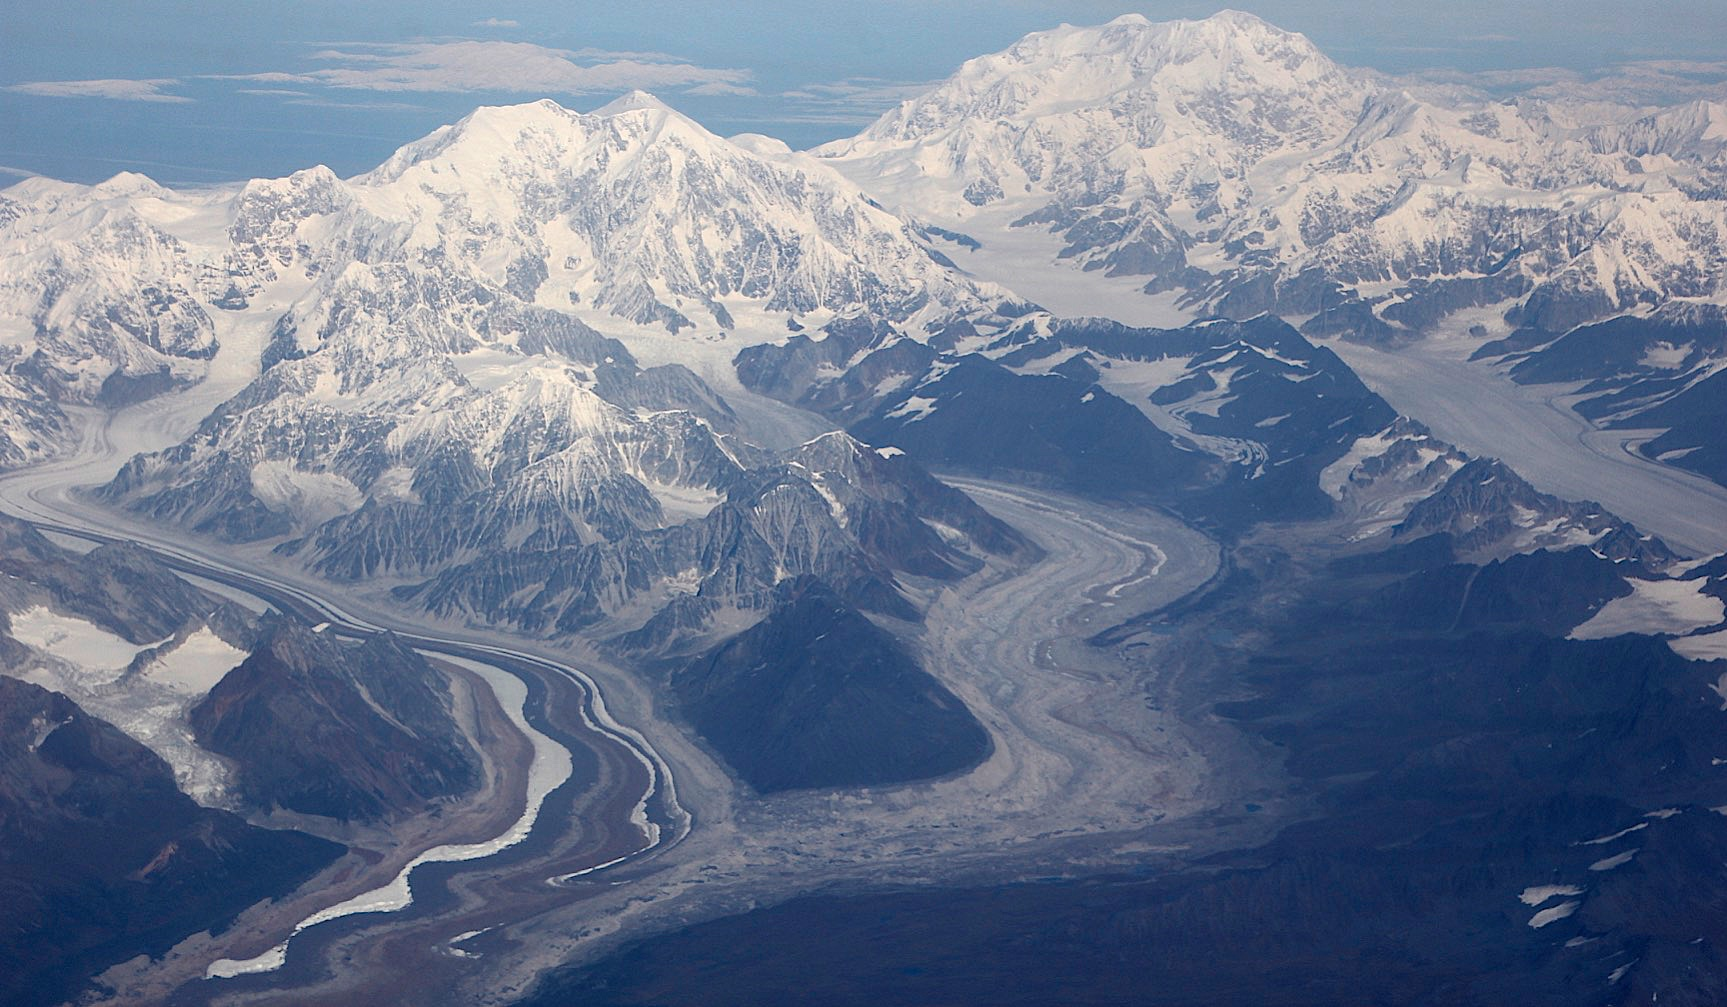 from R to L: Mt. Foraker 17,400 ft and Denali 20,320 ft